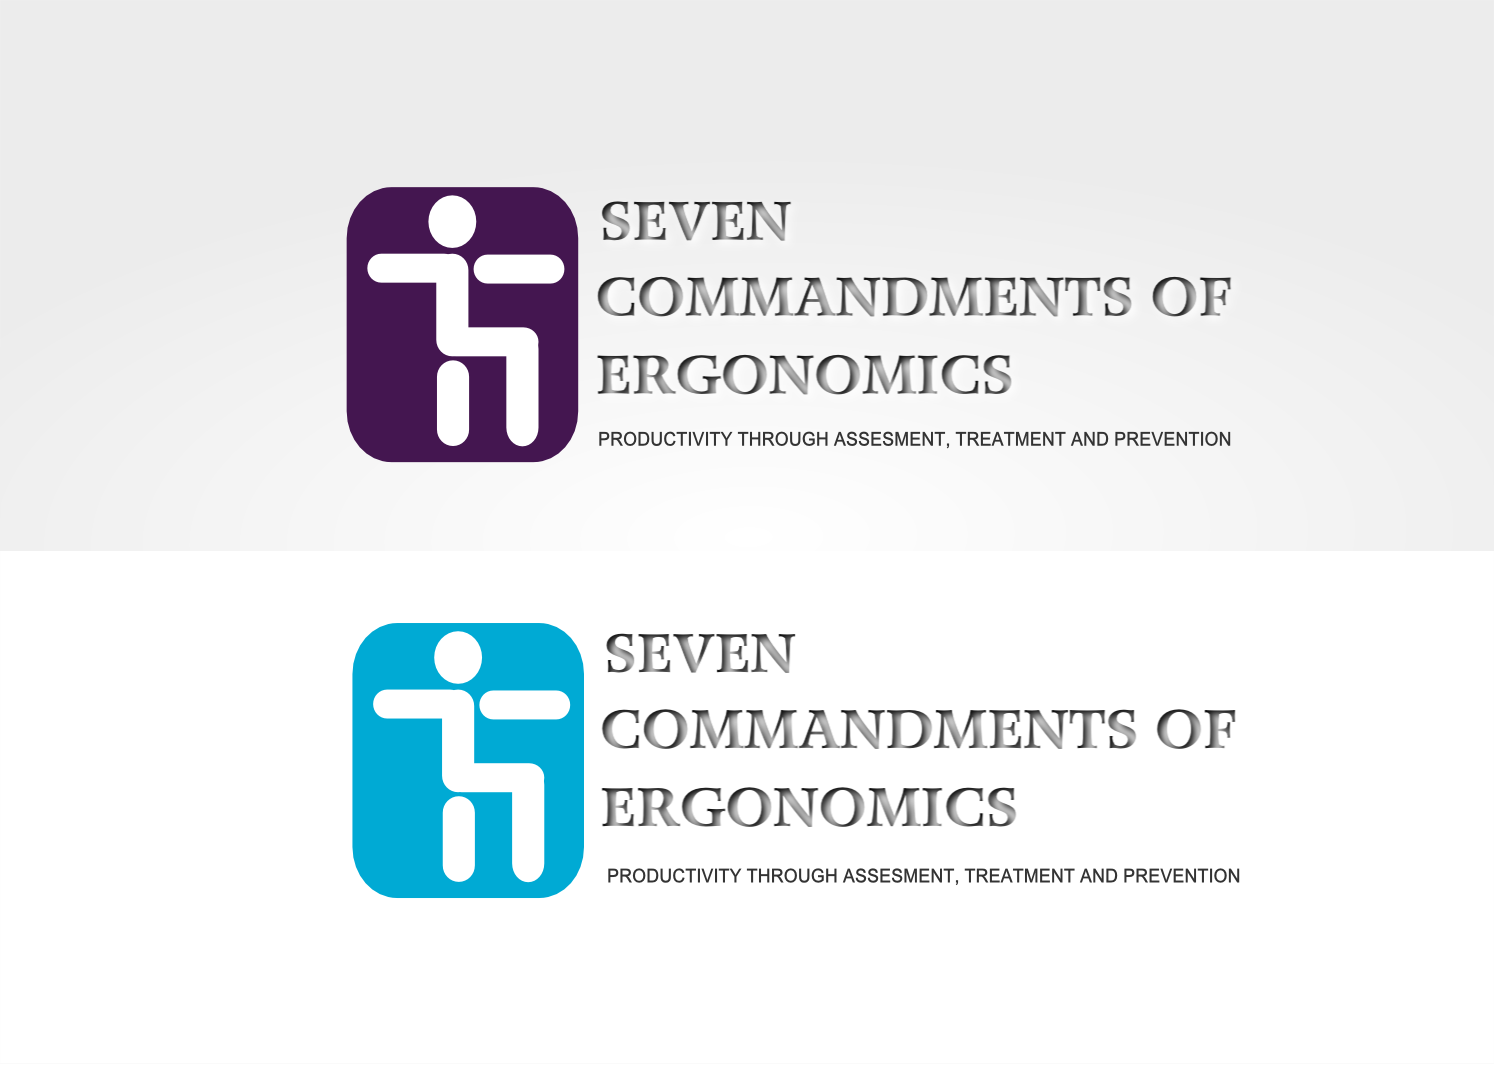 Logo Design by Joseph calunsag Cagaanan - Entry No. 123 in the Logo Design Contest Logo Design for Seven Commandments of Ergonomics.